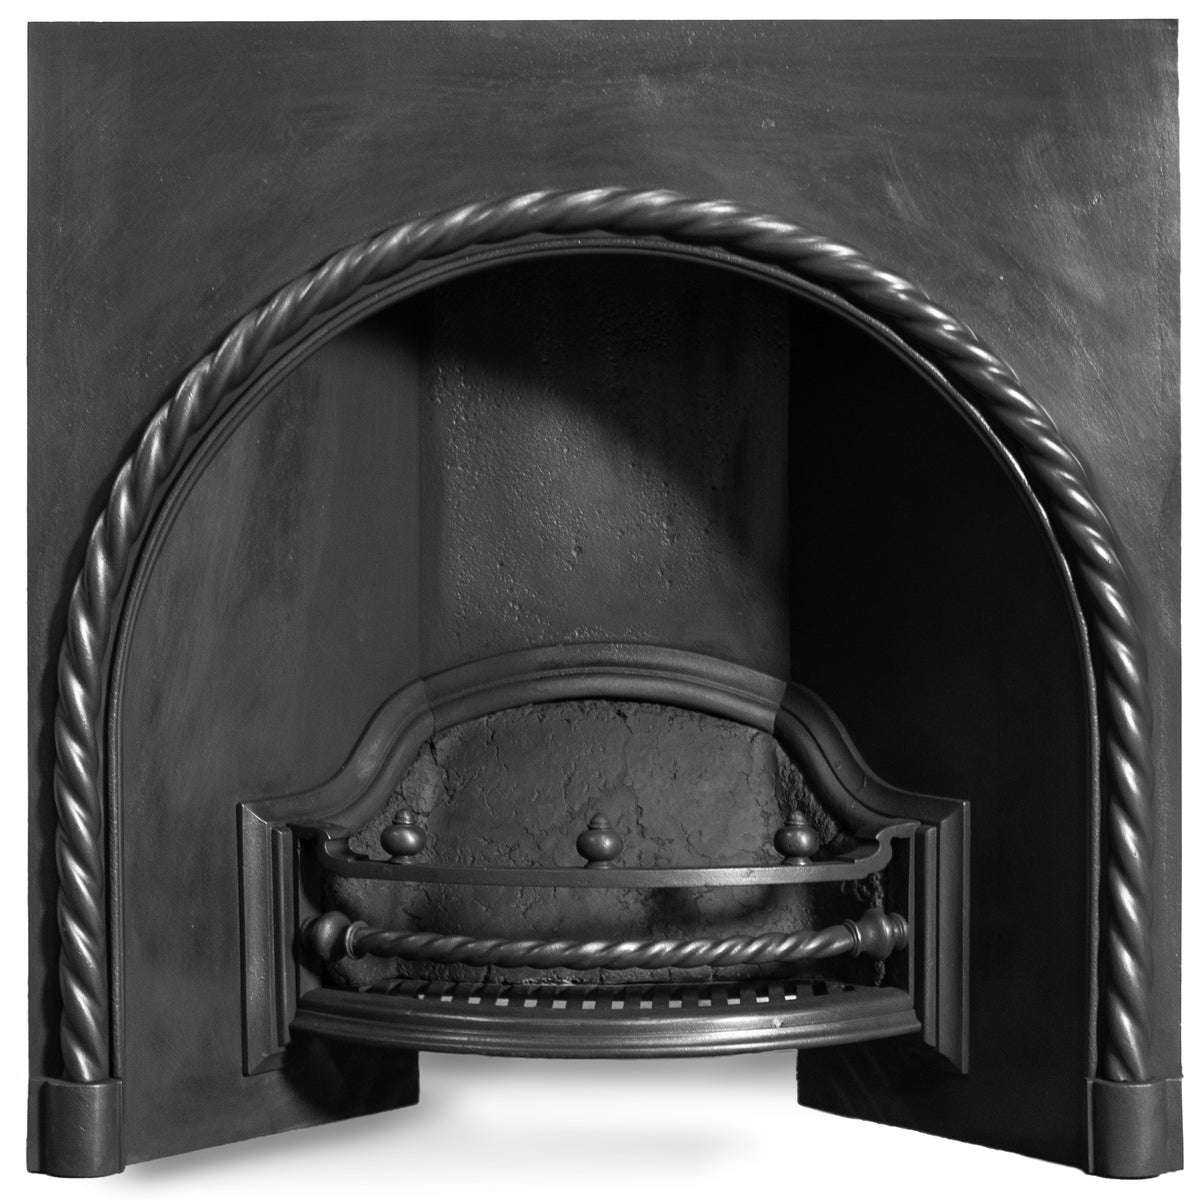 Antique Cast Iron Arched Fireplace Insert with Rope Detail | The Architectural Forum